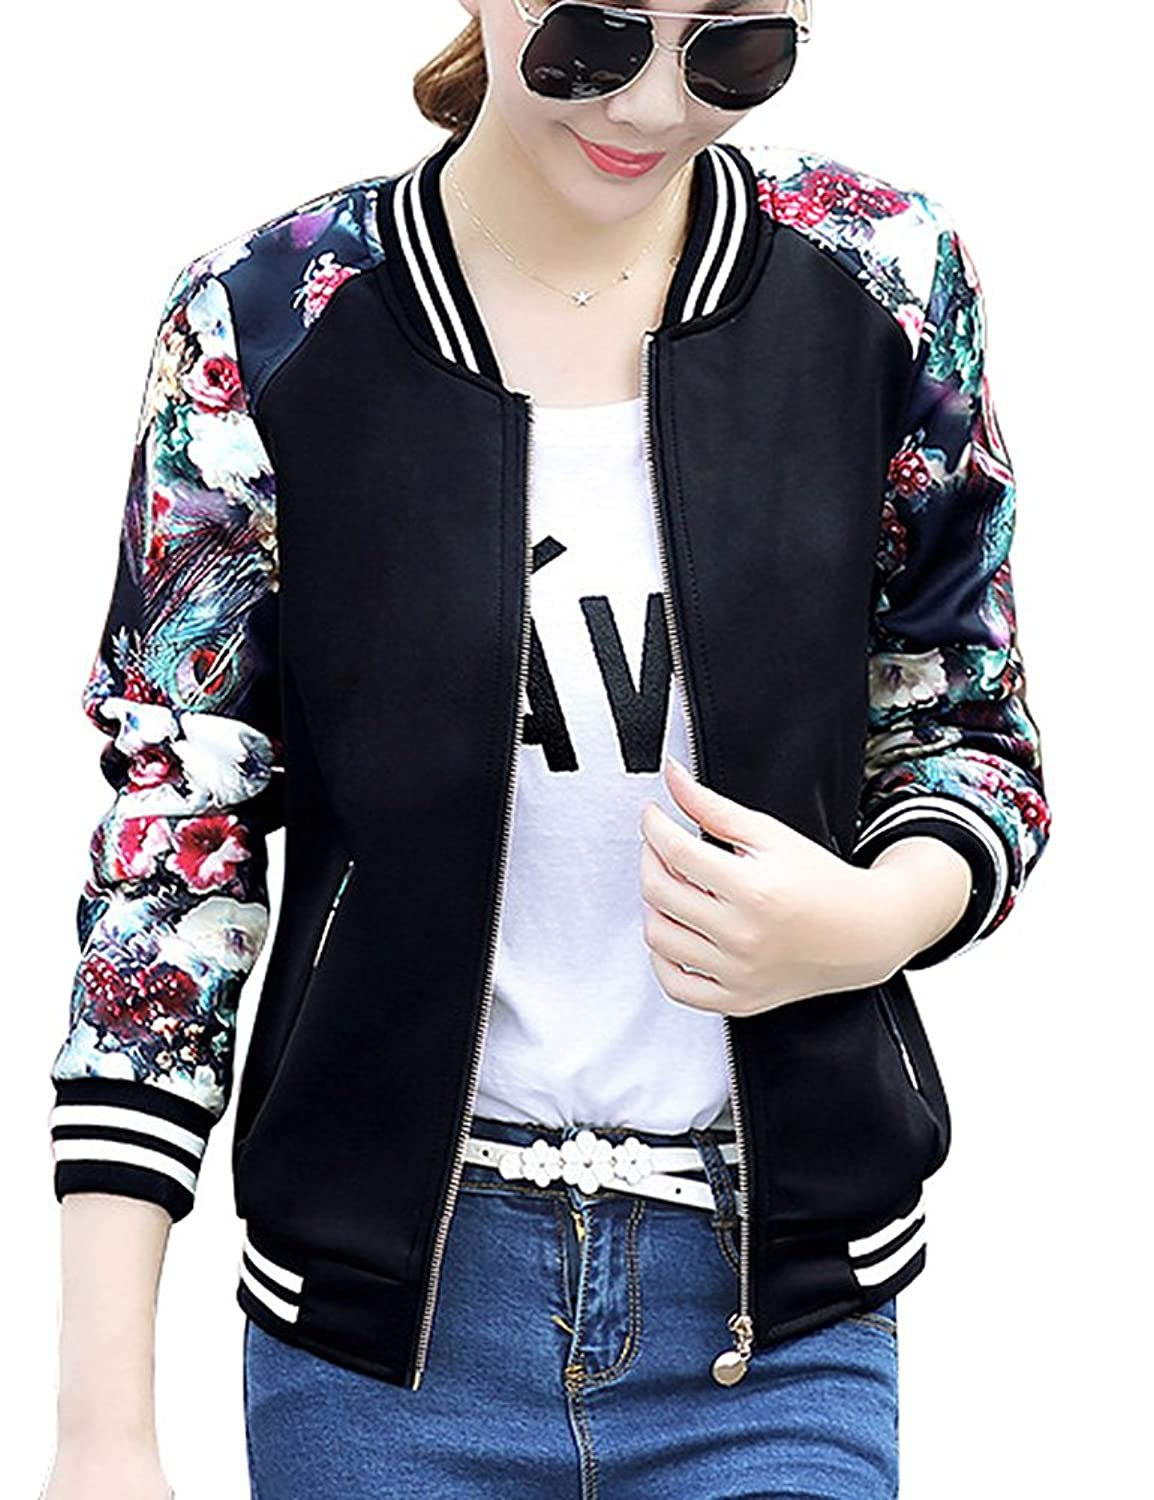 Wholesale FV RELAY Women's Slim Fit Floral Print Baseball Bomber Jacket Casual Coat Outwear for cheap